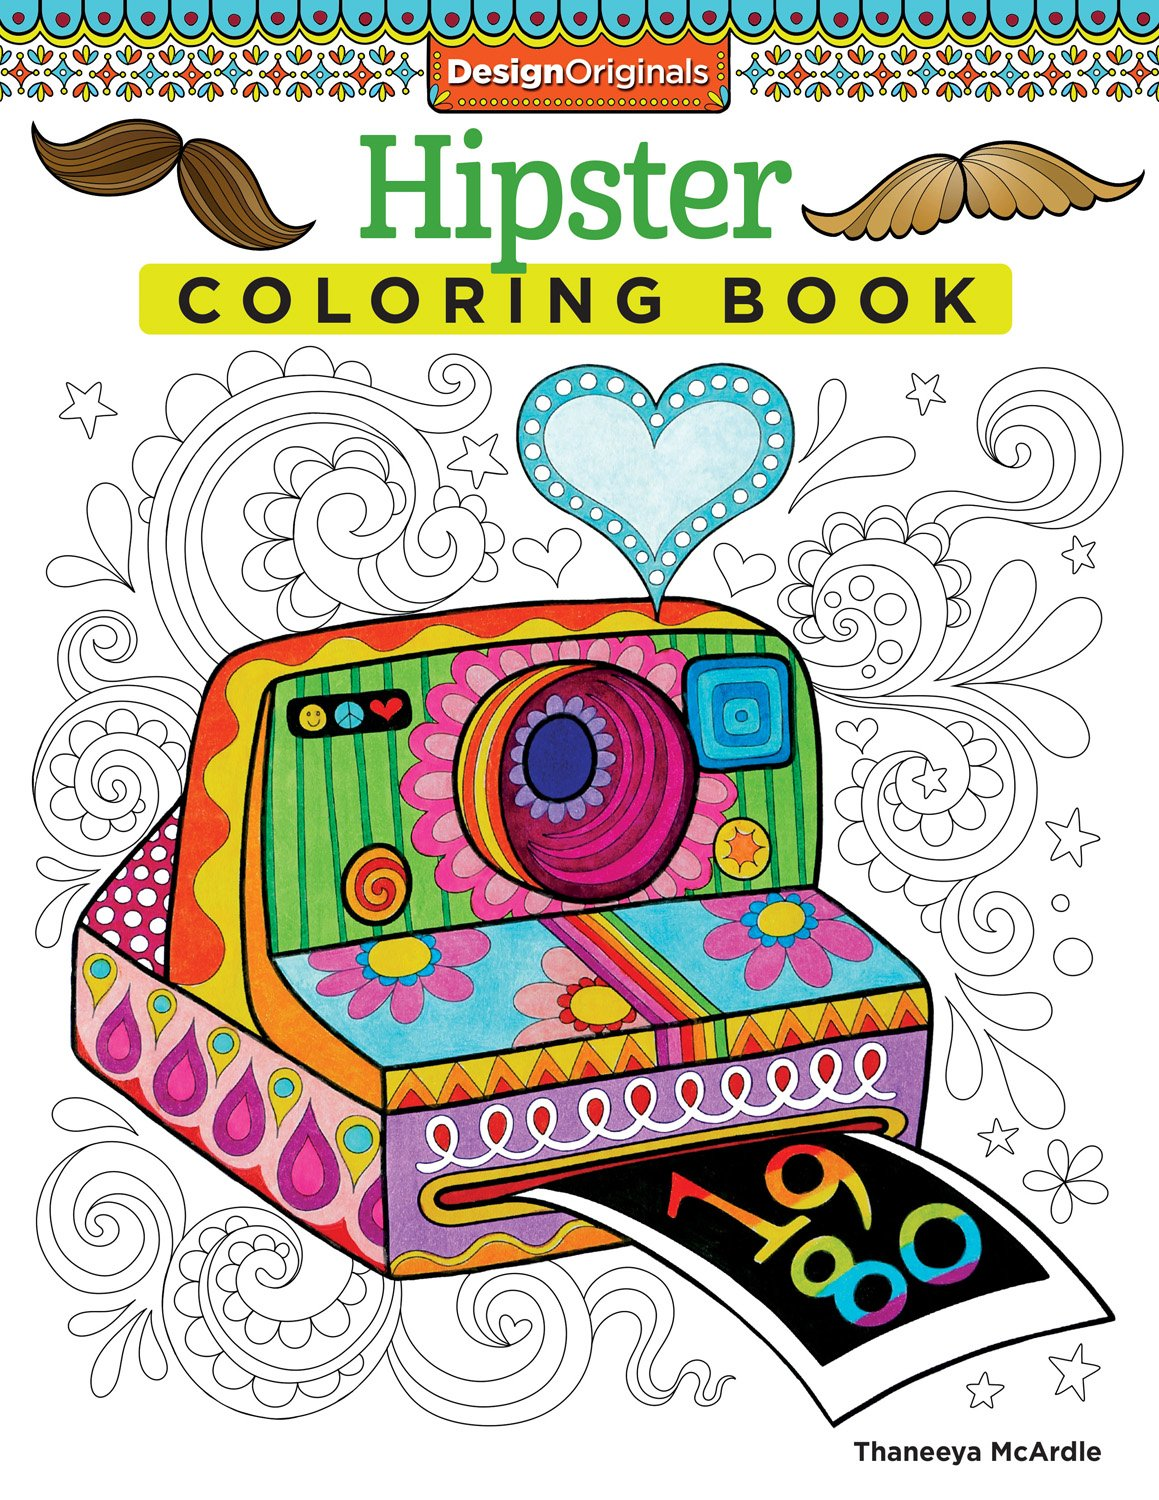 Coloring Books Aren\'t Just for Kids (+ 4 Other Ways to Fight the ...